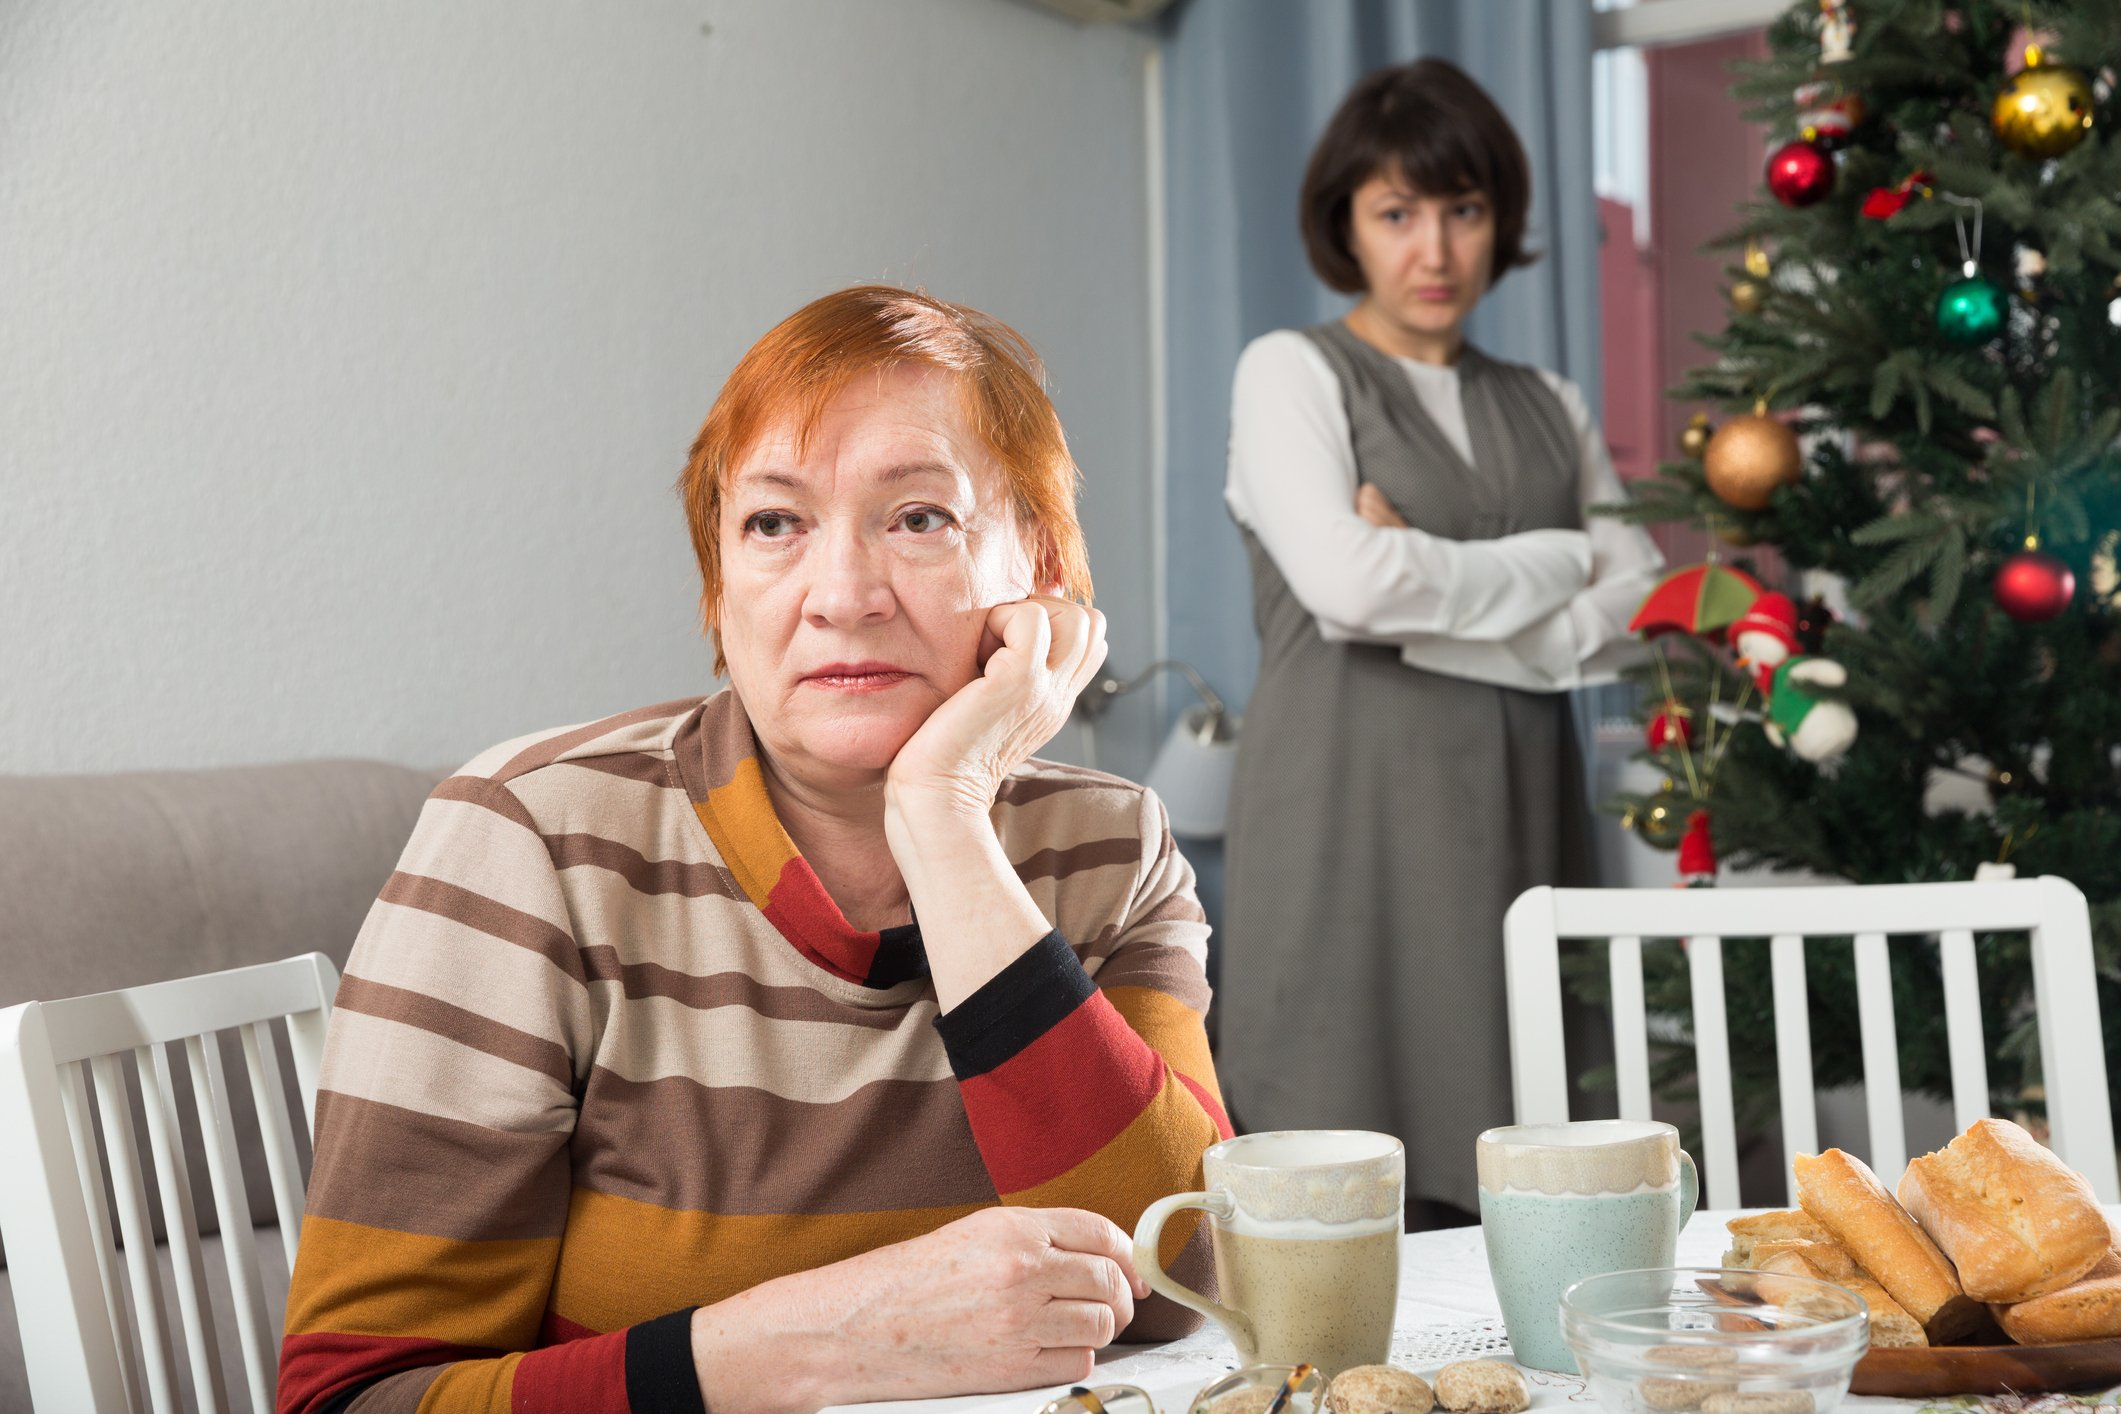 Photo of an upset mother and daughter at the Christmas table | Photo: Getty Images